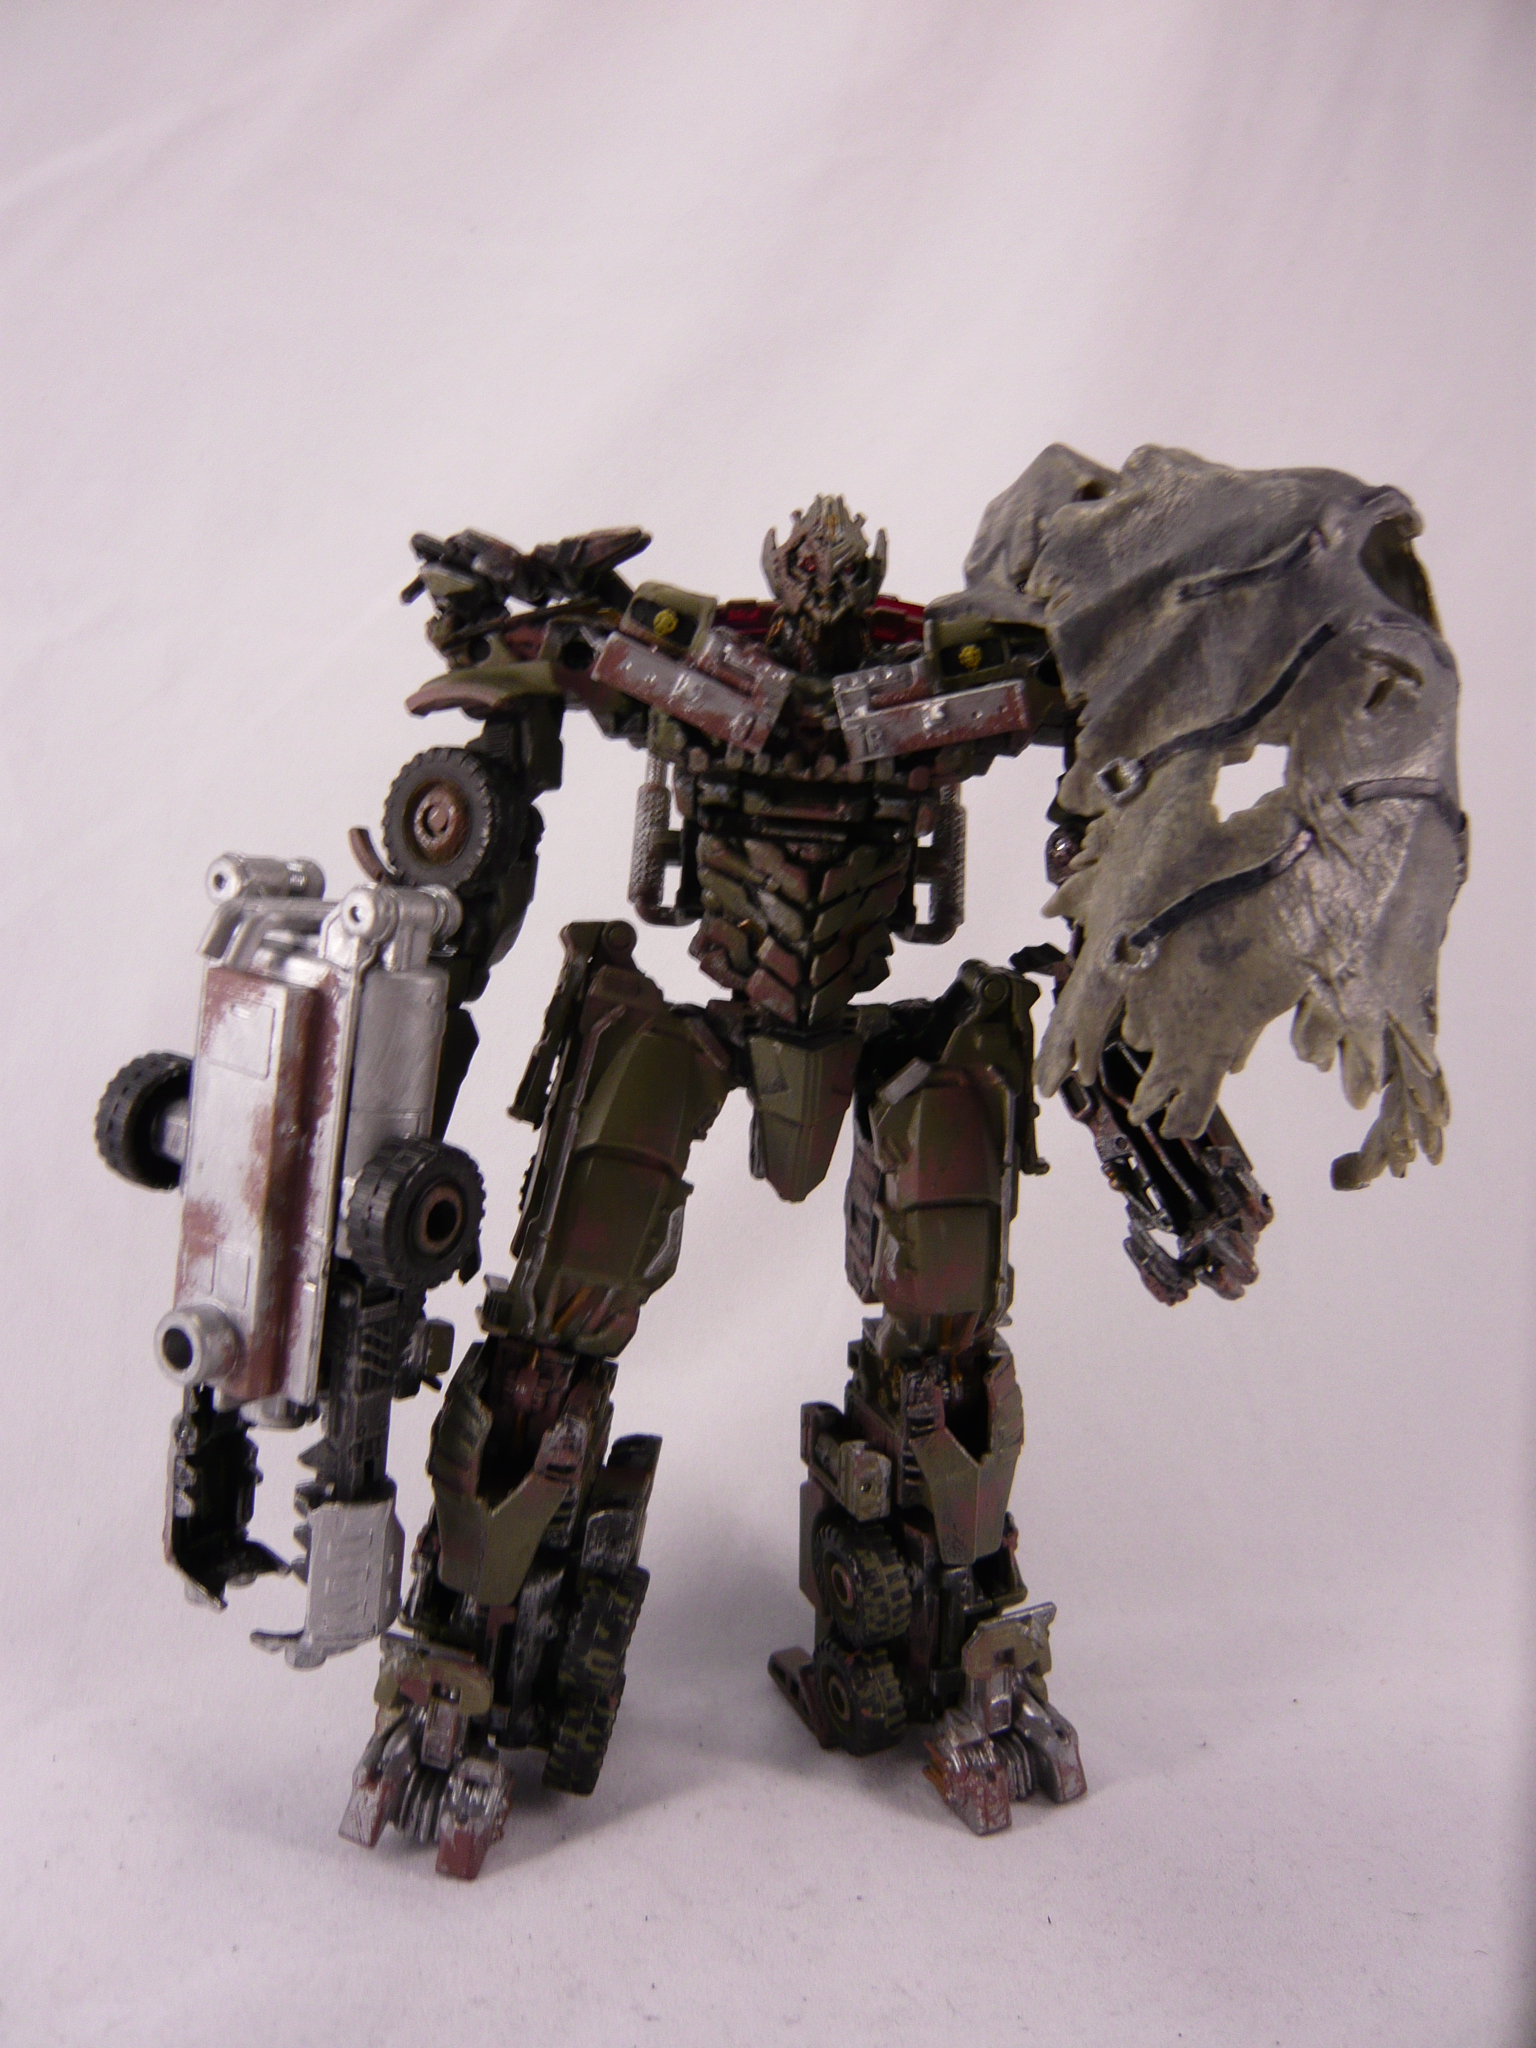 Pictorial Review of DOTM Voyager Megatron-p1130823.jpg